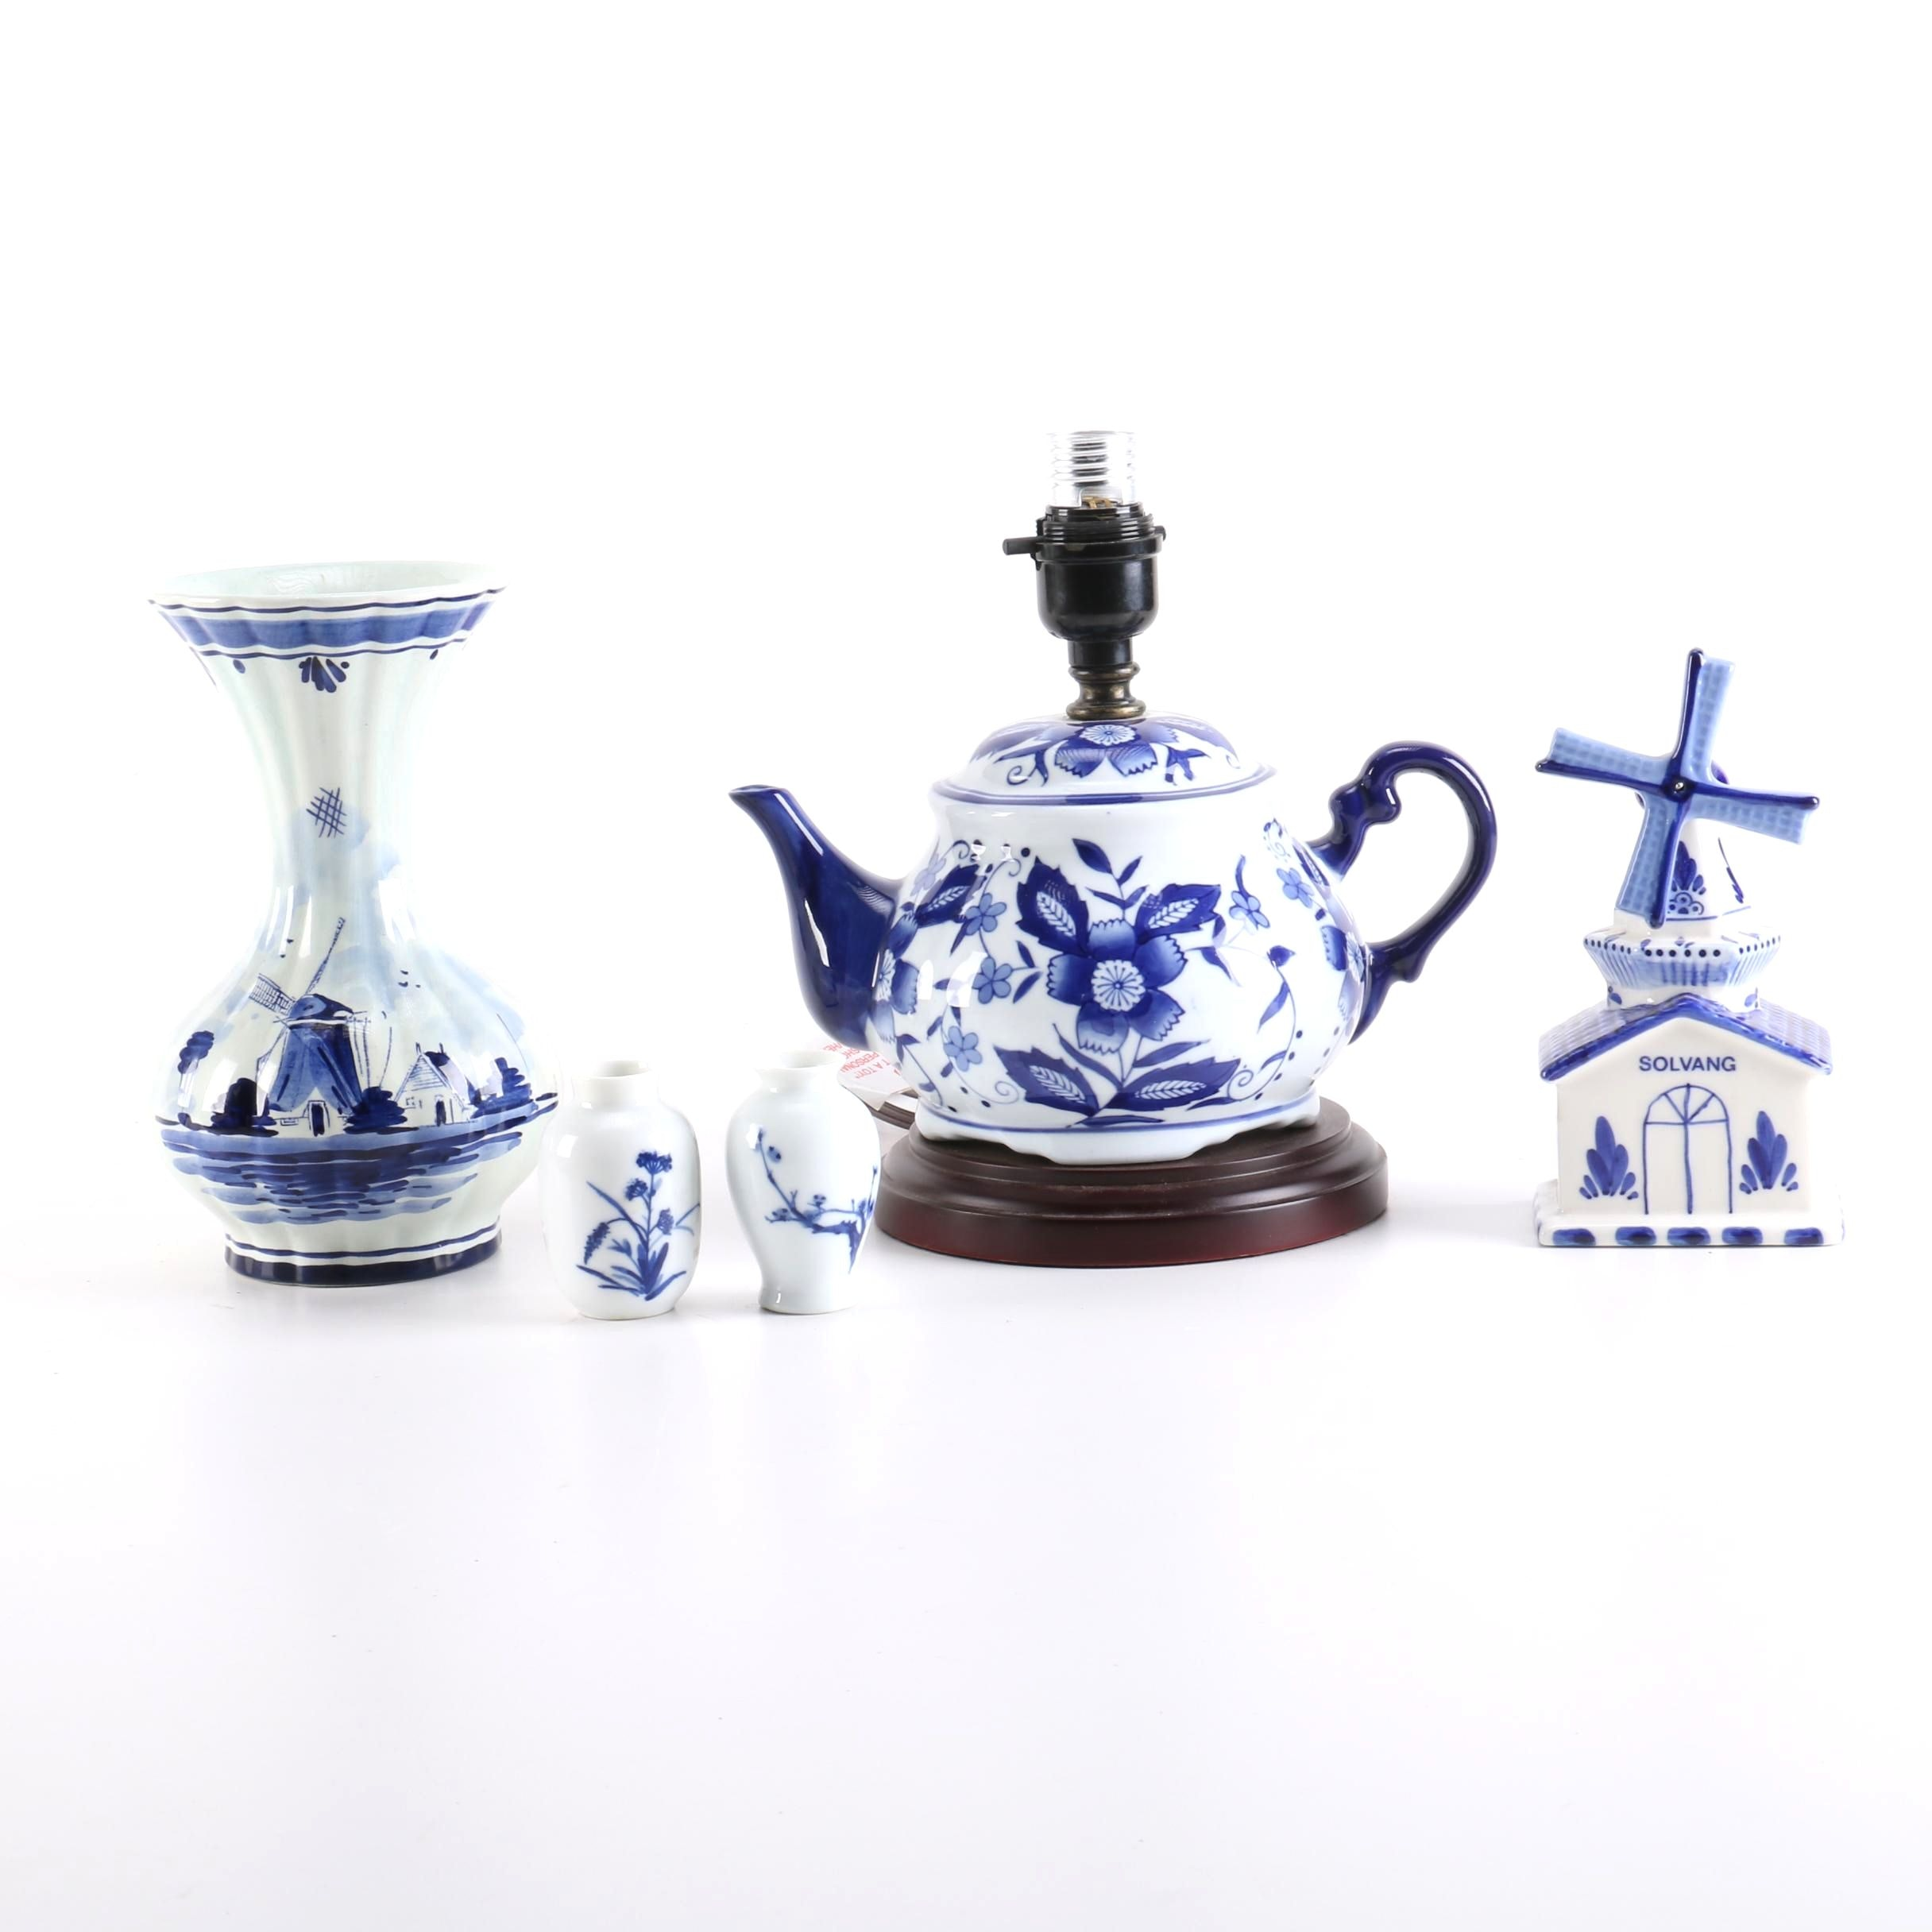 Blue and White Porcelain Pottery Including Delft Pottery